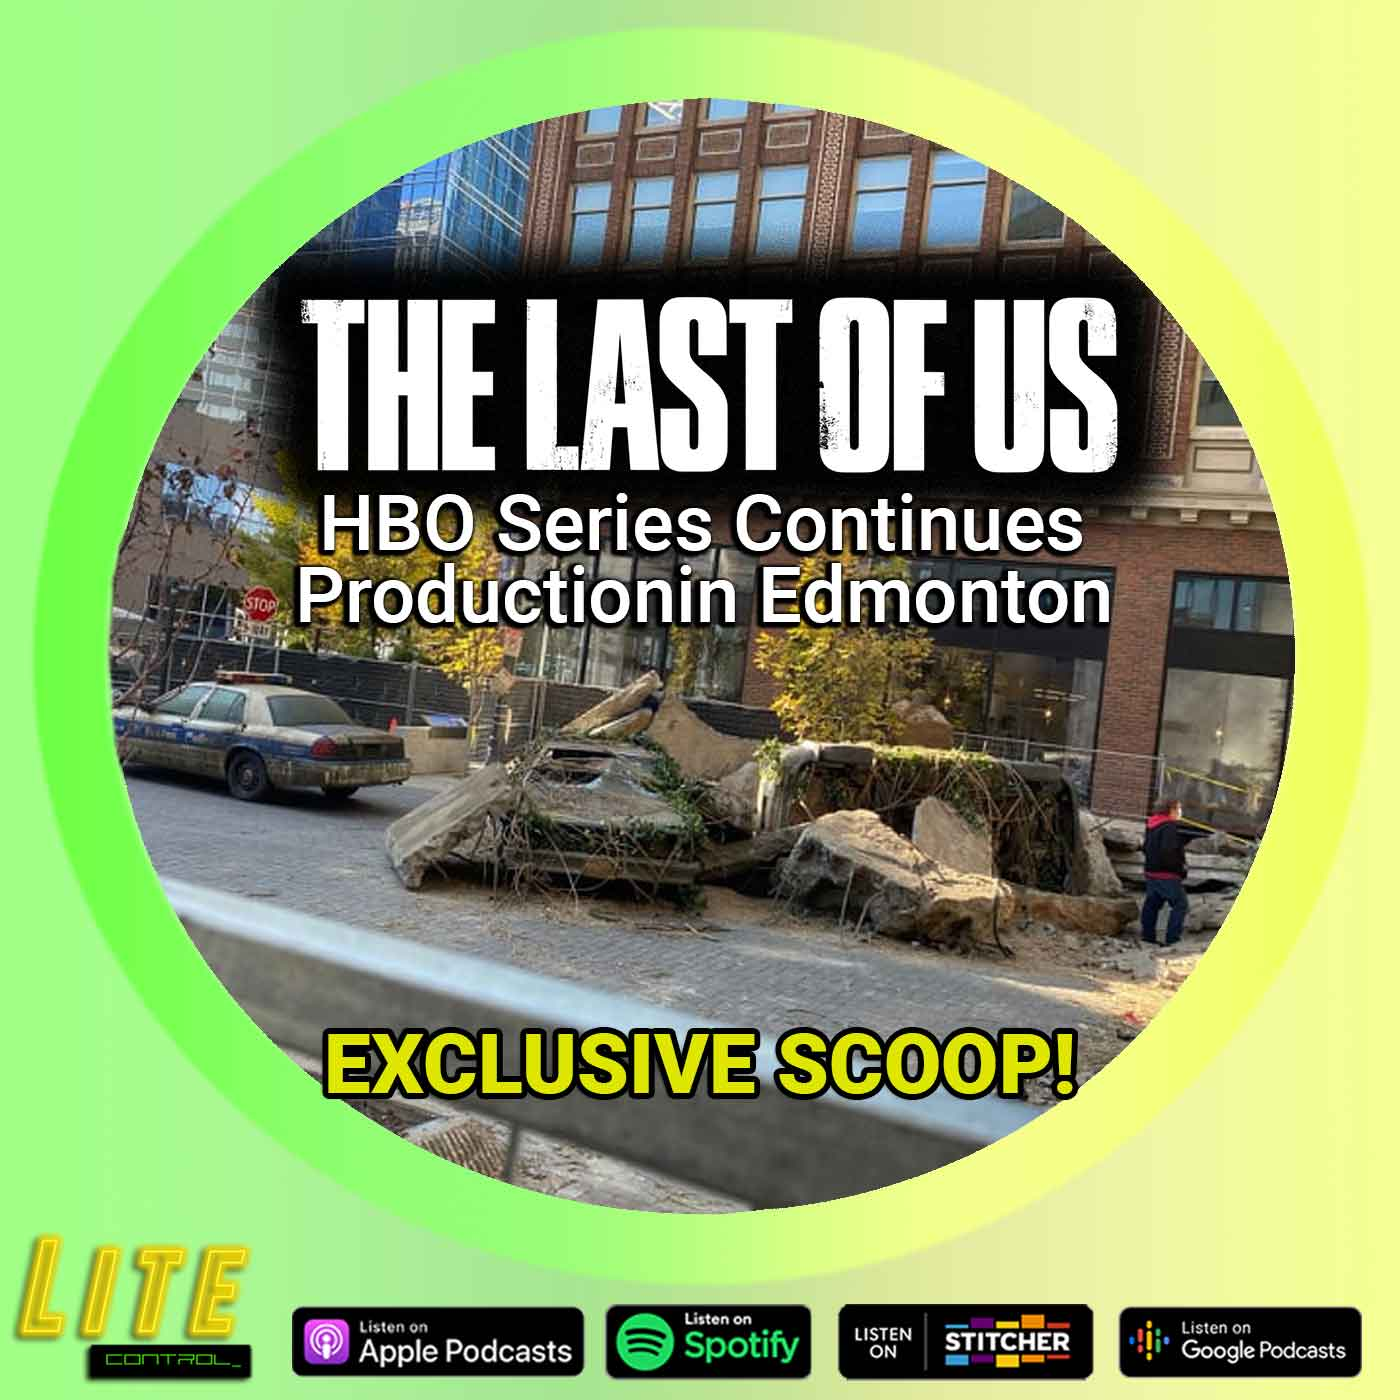 Lite Control 176 - [Exclusive] Pics Gathered from The Last of Us HBO Series from Edmonton Canada